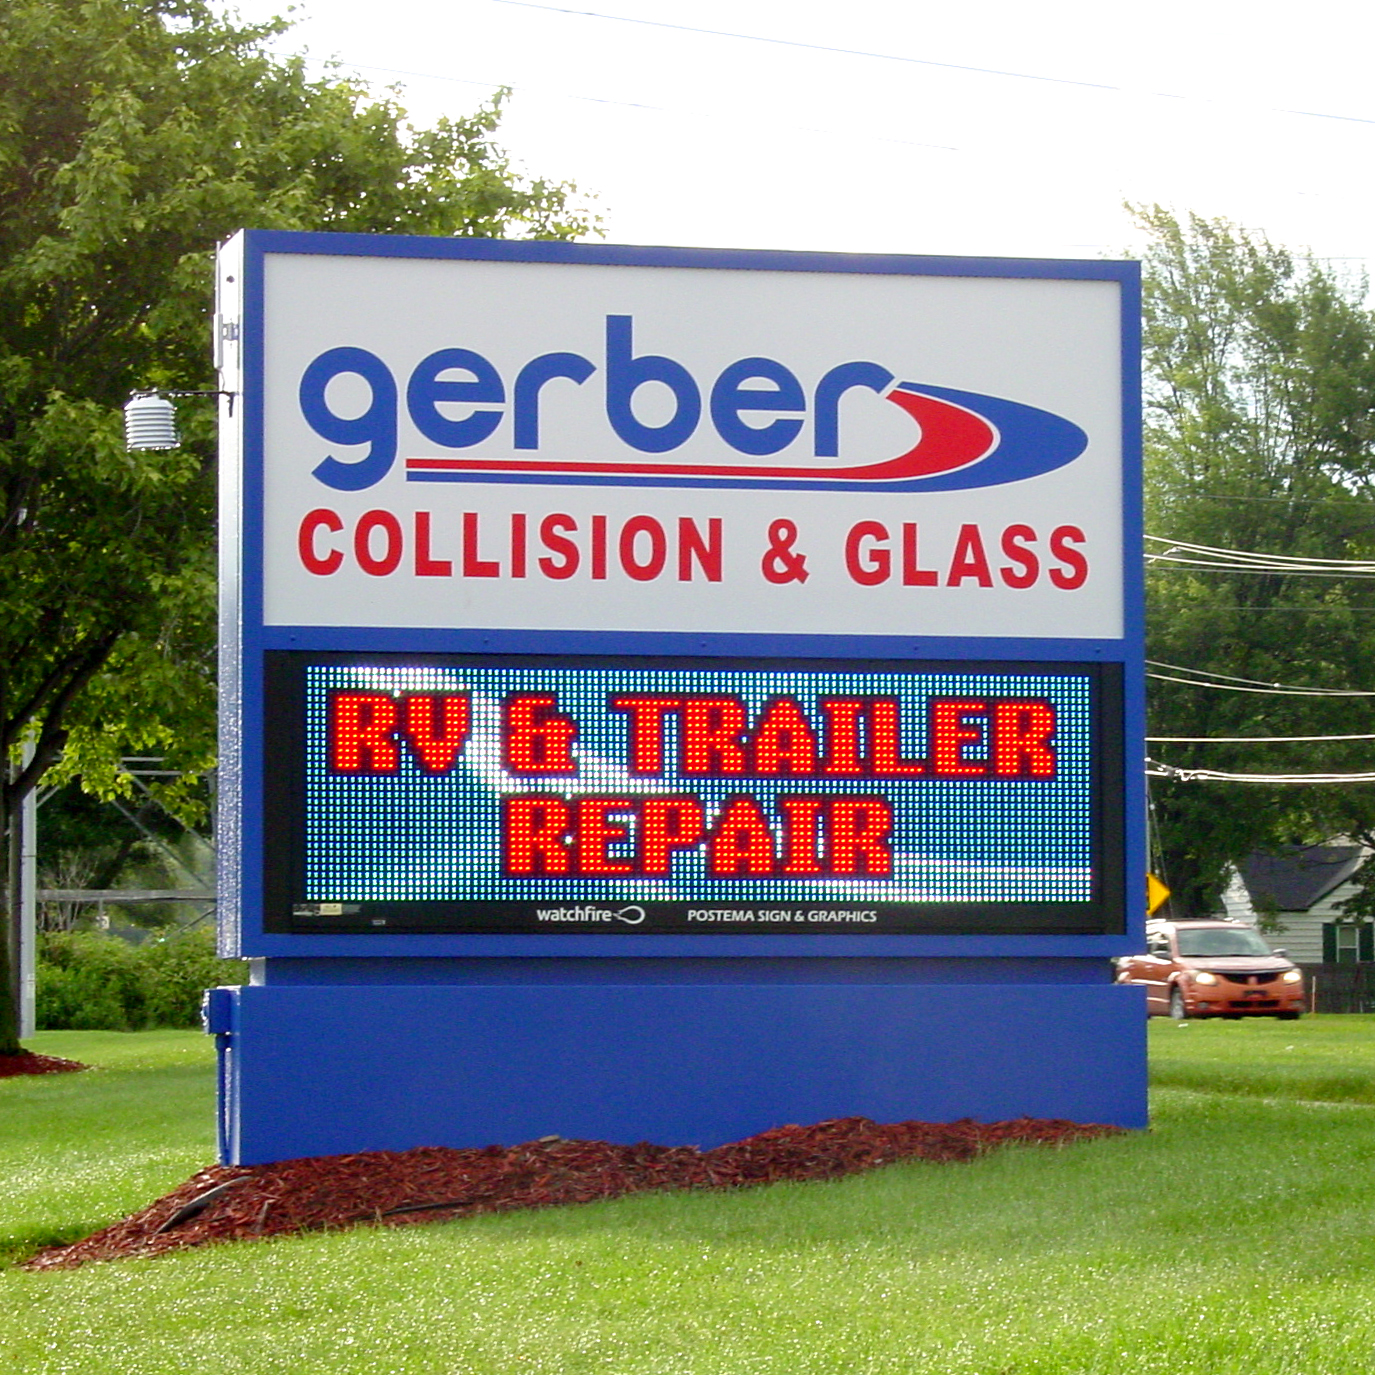 Gerber Collision - Corporate 2.jpg